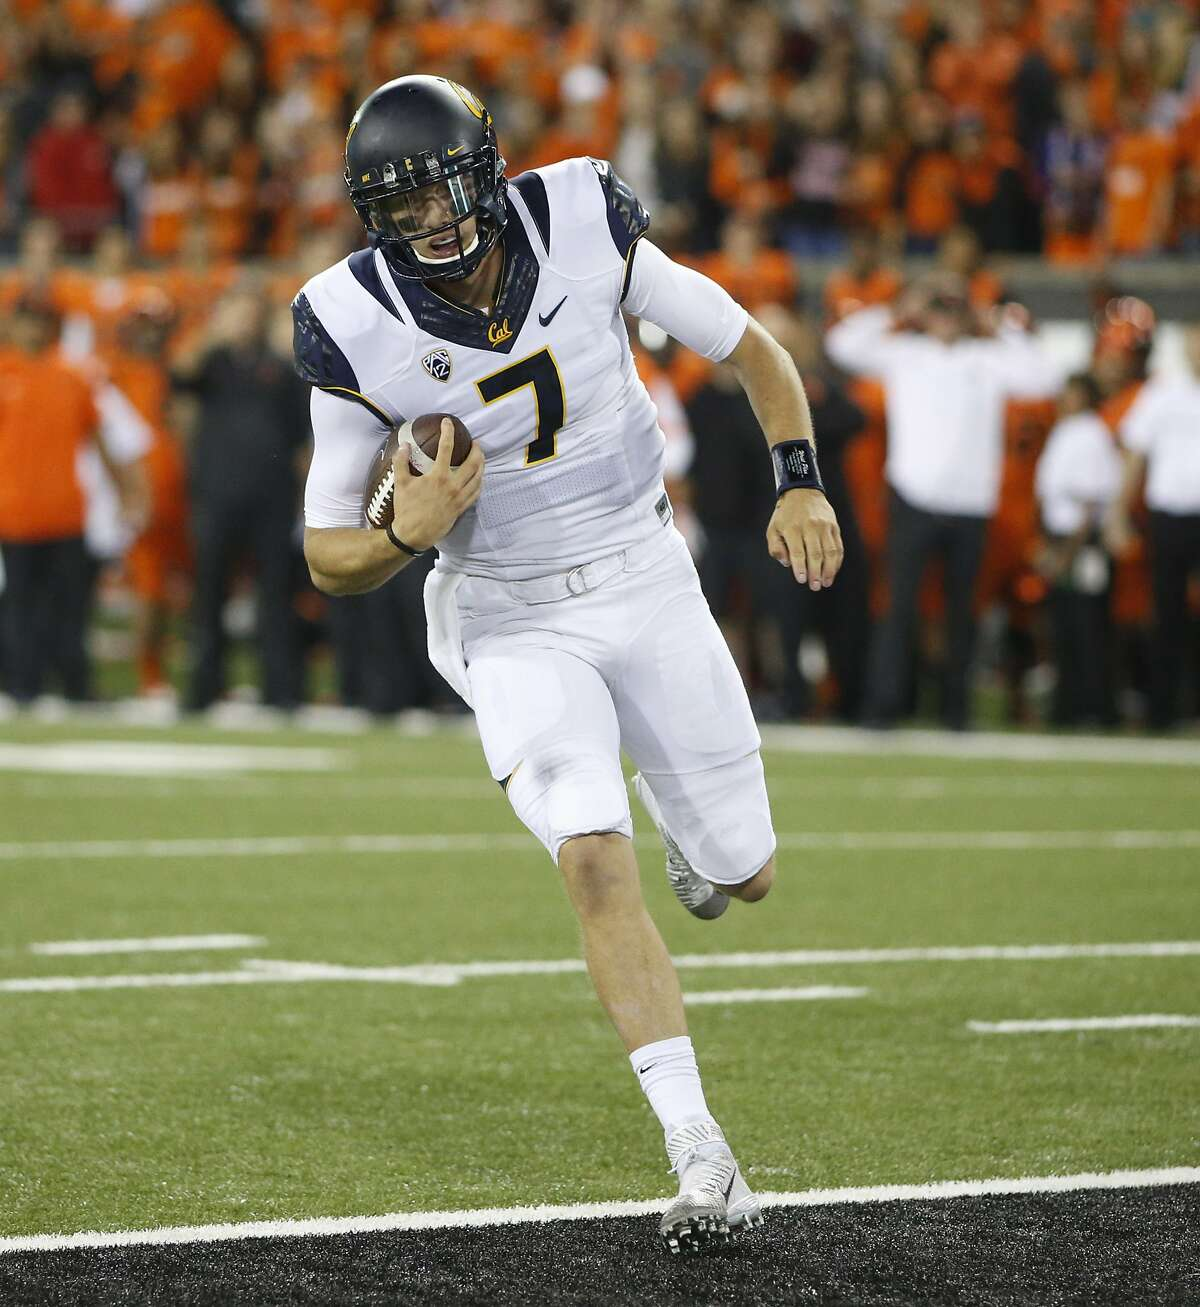 California quarterback Davis Webb runs untouched into the end zone for a touchdown during the second half of an NCAA college football game against Oregon State, in Corvallis, Ore., on Saturday, Oct. 8, 2016. (AP Photo/Timothy J. Gonzalez)